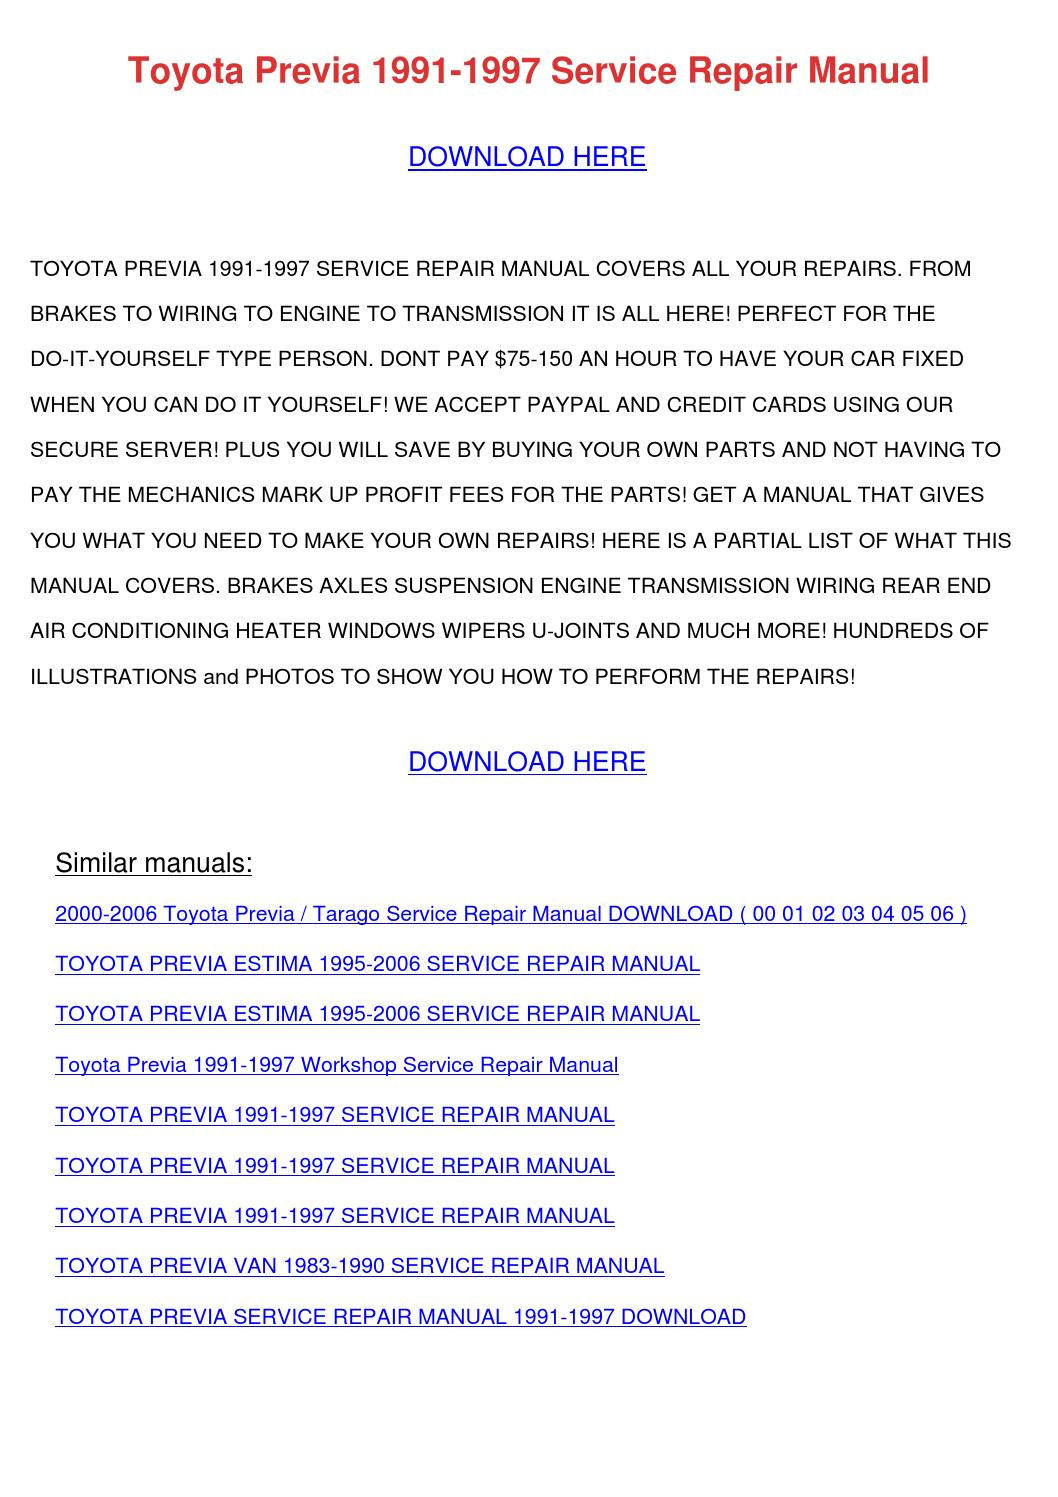 Toyota Previa Repair Manual 1991 1995 Imageresizertool Estima Wiring Diagram Download 1997 Service By Emmadarby Issuu